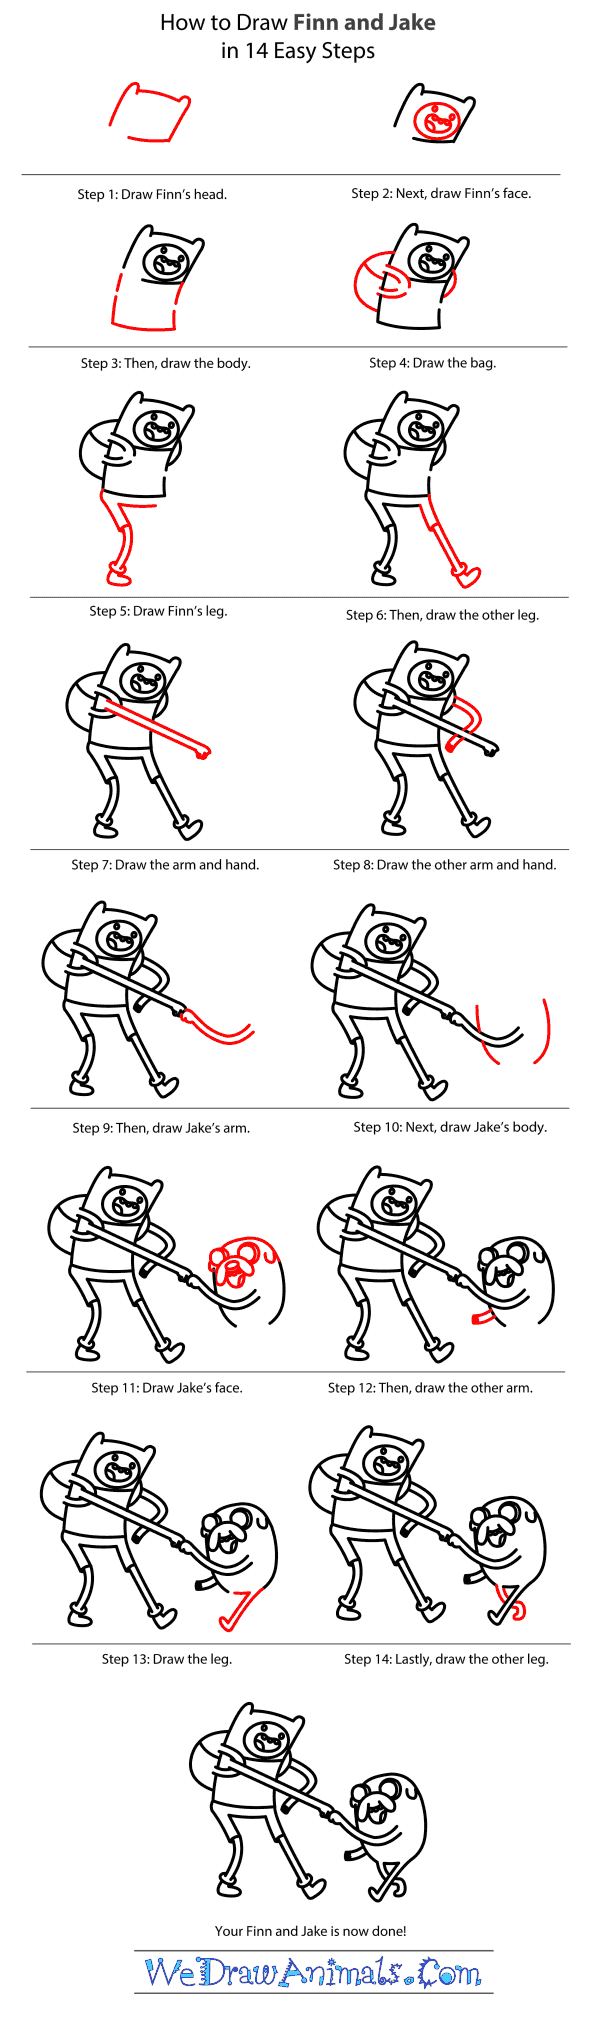 How to Draw Finn And Jake From Adventure Time - Step-by-Step Tutorial